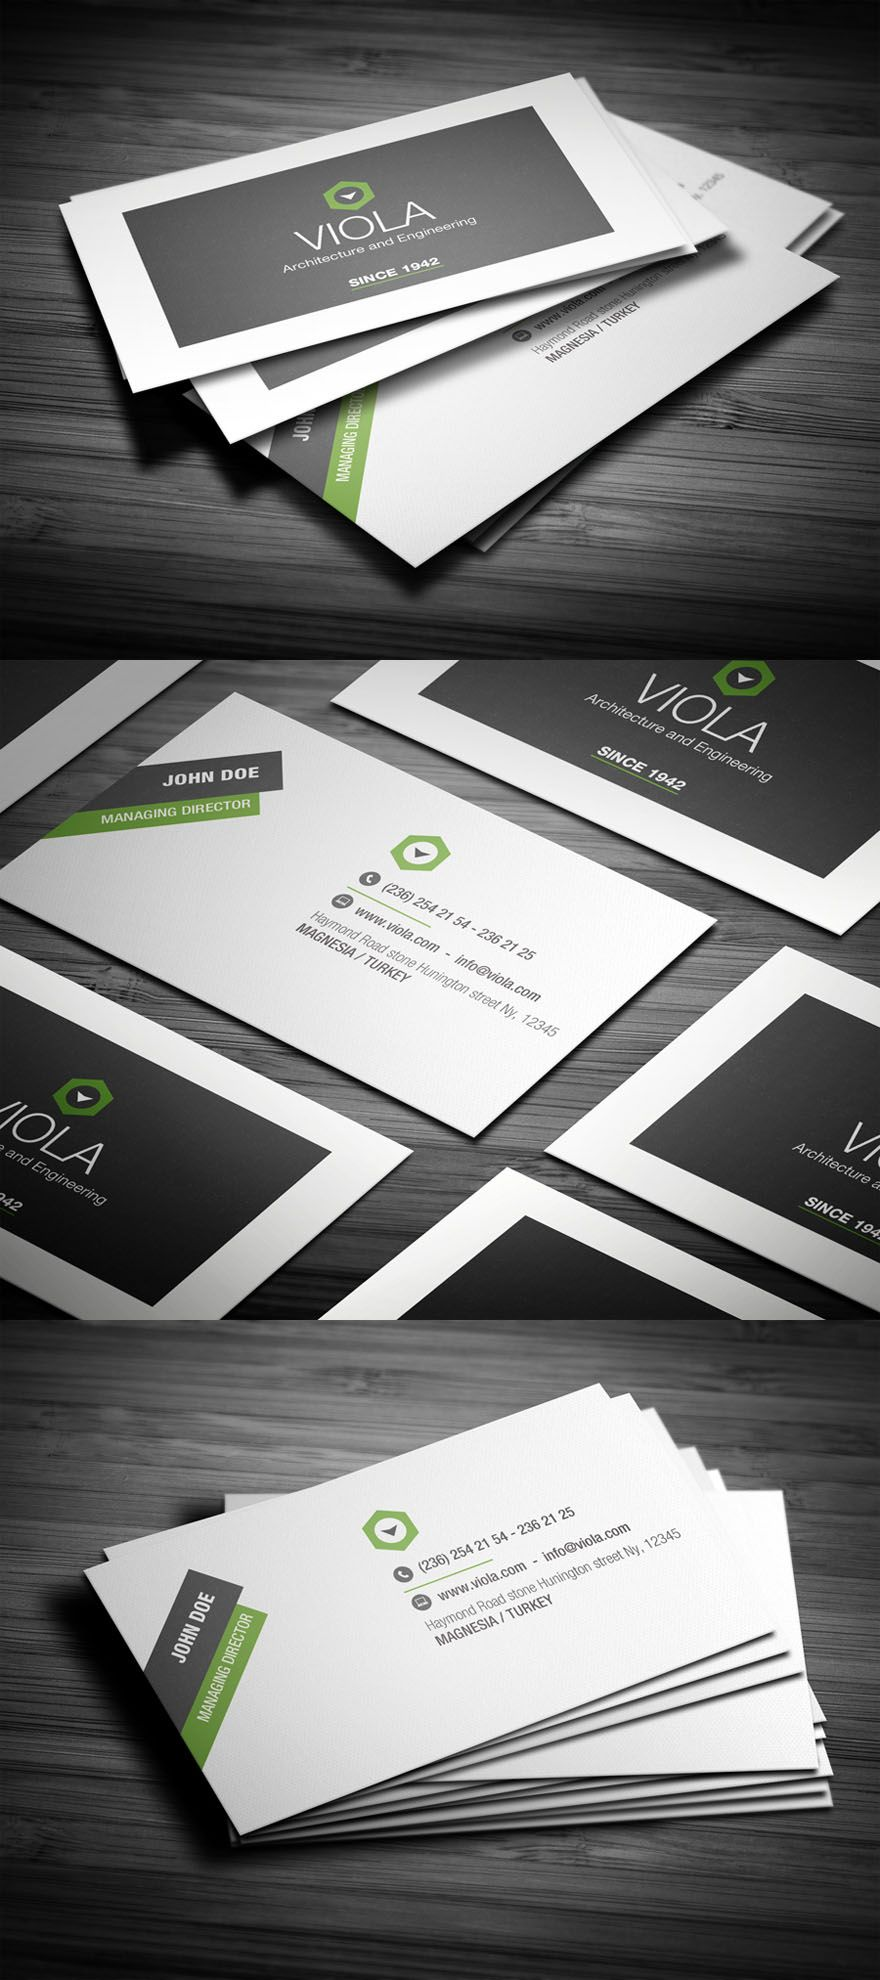 25 Creative Corporate Themed Business Card Design Examples Follo Corporate Business Card Design Business Card Design Inspiration Business Card Design Creative